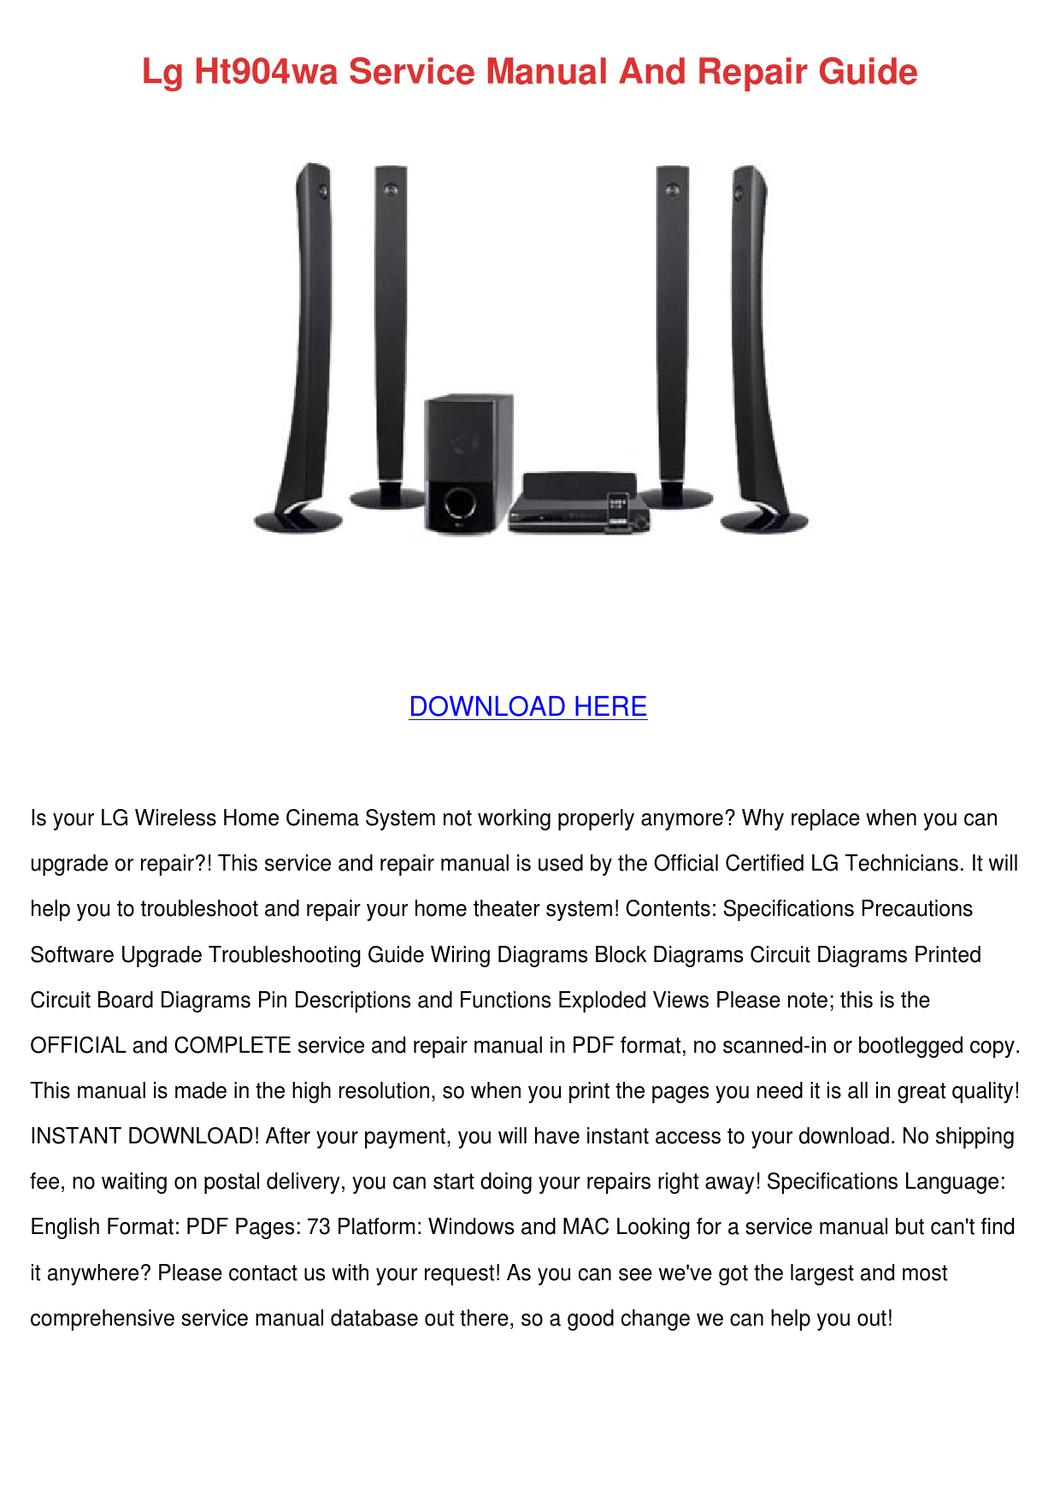 Lg Ht904wa Service Manual And Repair Guide By Nevamiddleton Issuu Wireless Home Theater Diagrams